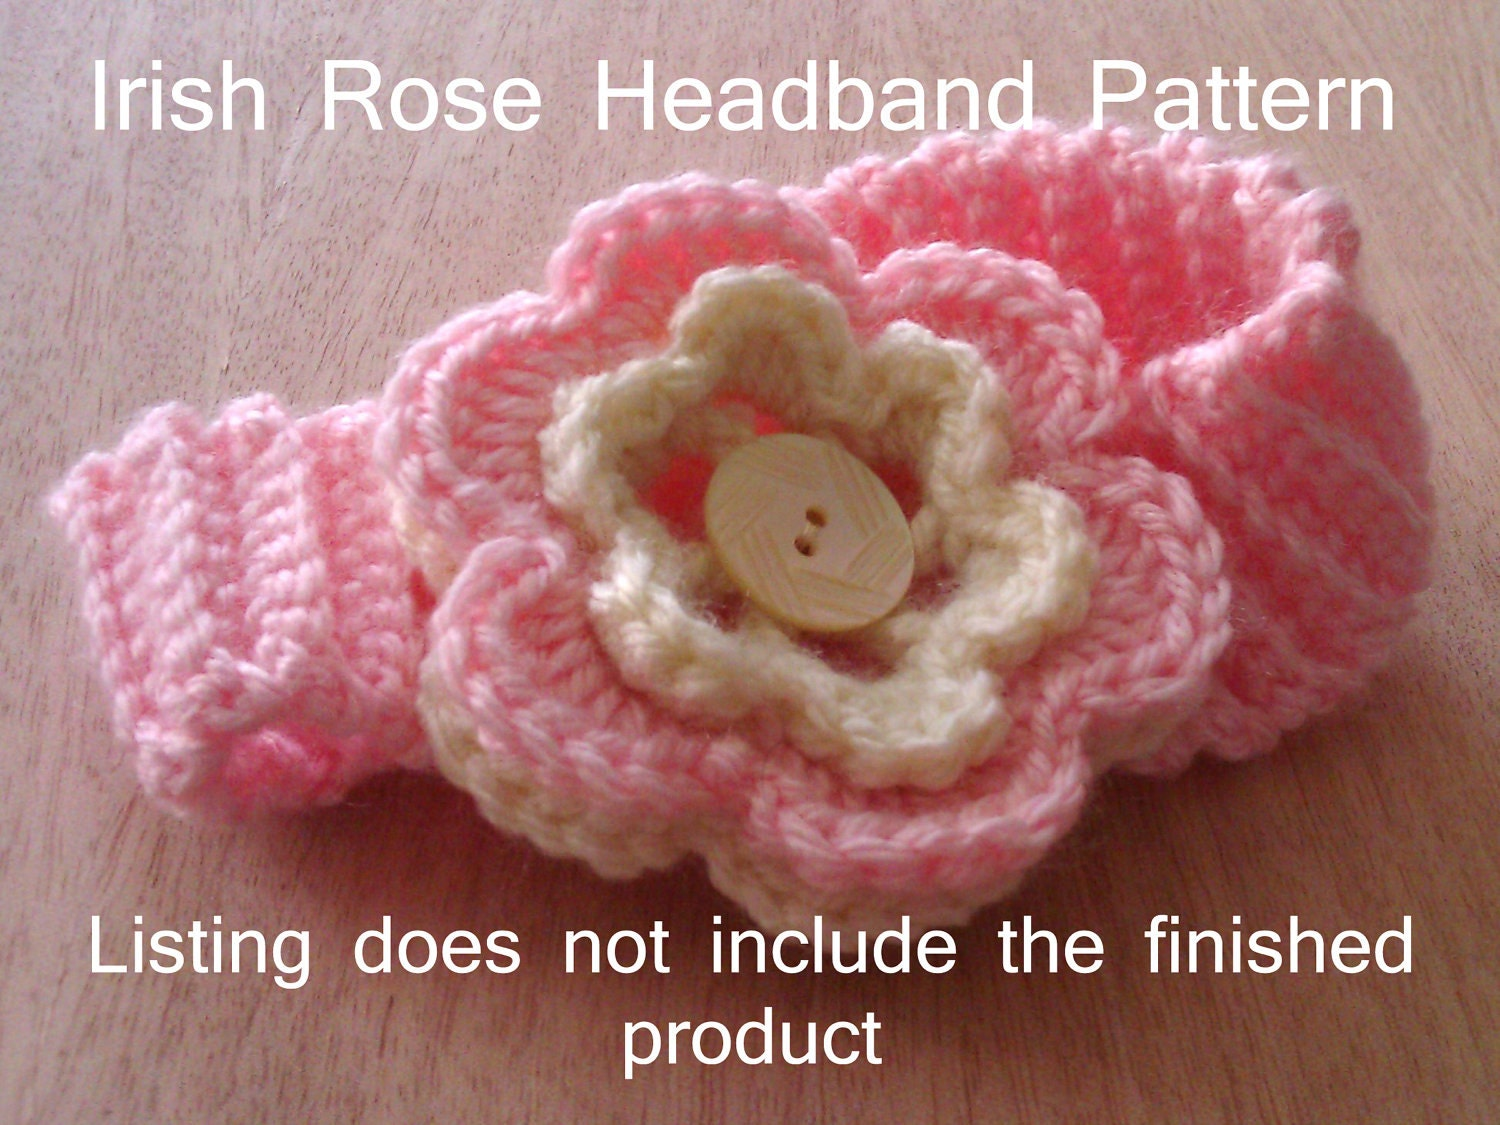 Crochet Headband Pattern Newborn : Baby Girl Irish Rose Headband Crochet Pattern by CNCole87 ...